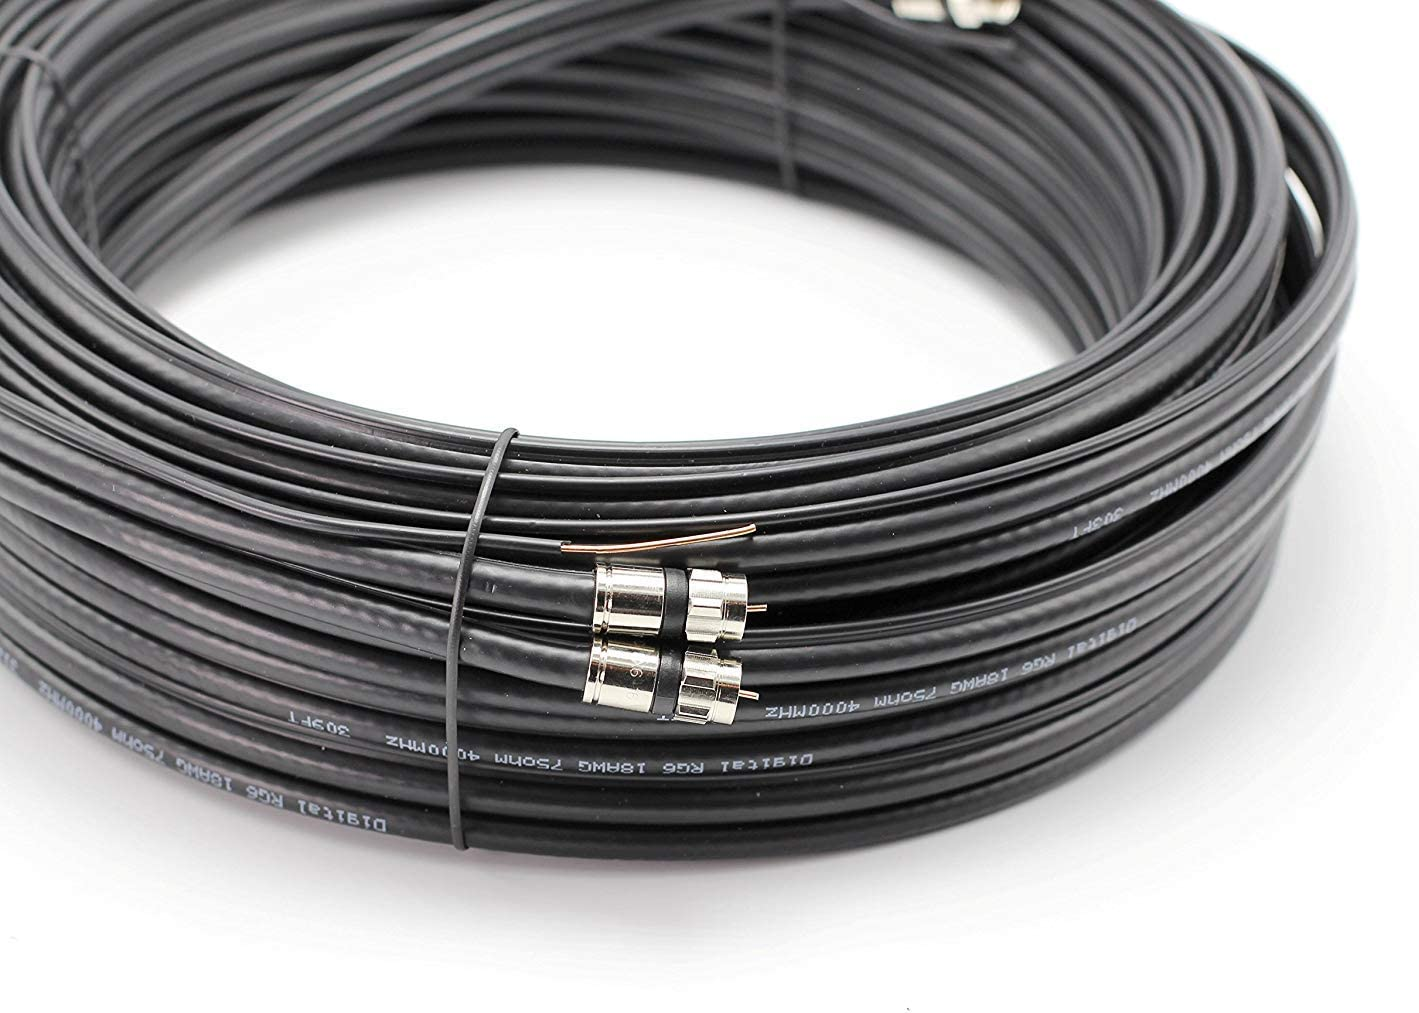 Siamese Cable Antenna /& CATV Quality Compression Connectors Black Satellite with 18AWG Copper Ground Wire 12ft Dual with Ground RG6 Coaxial Twin Coax Cable Made in The USA